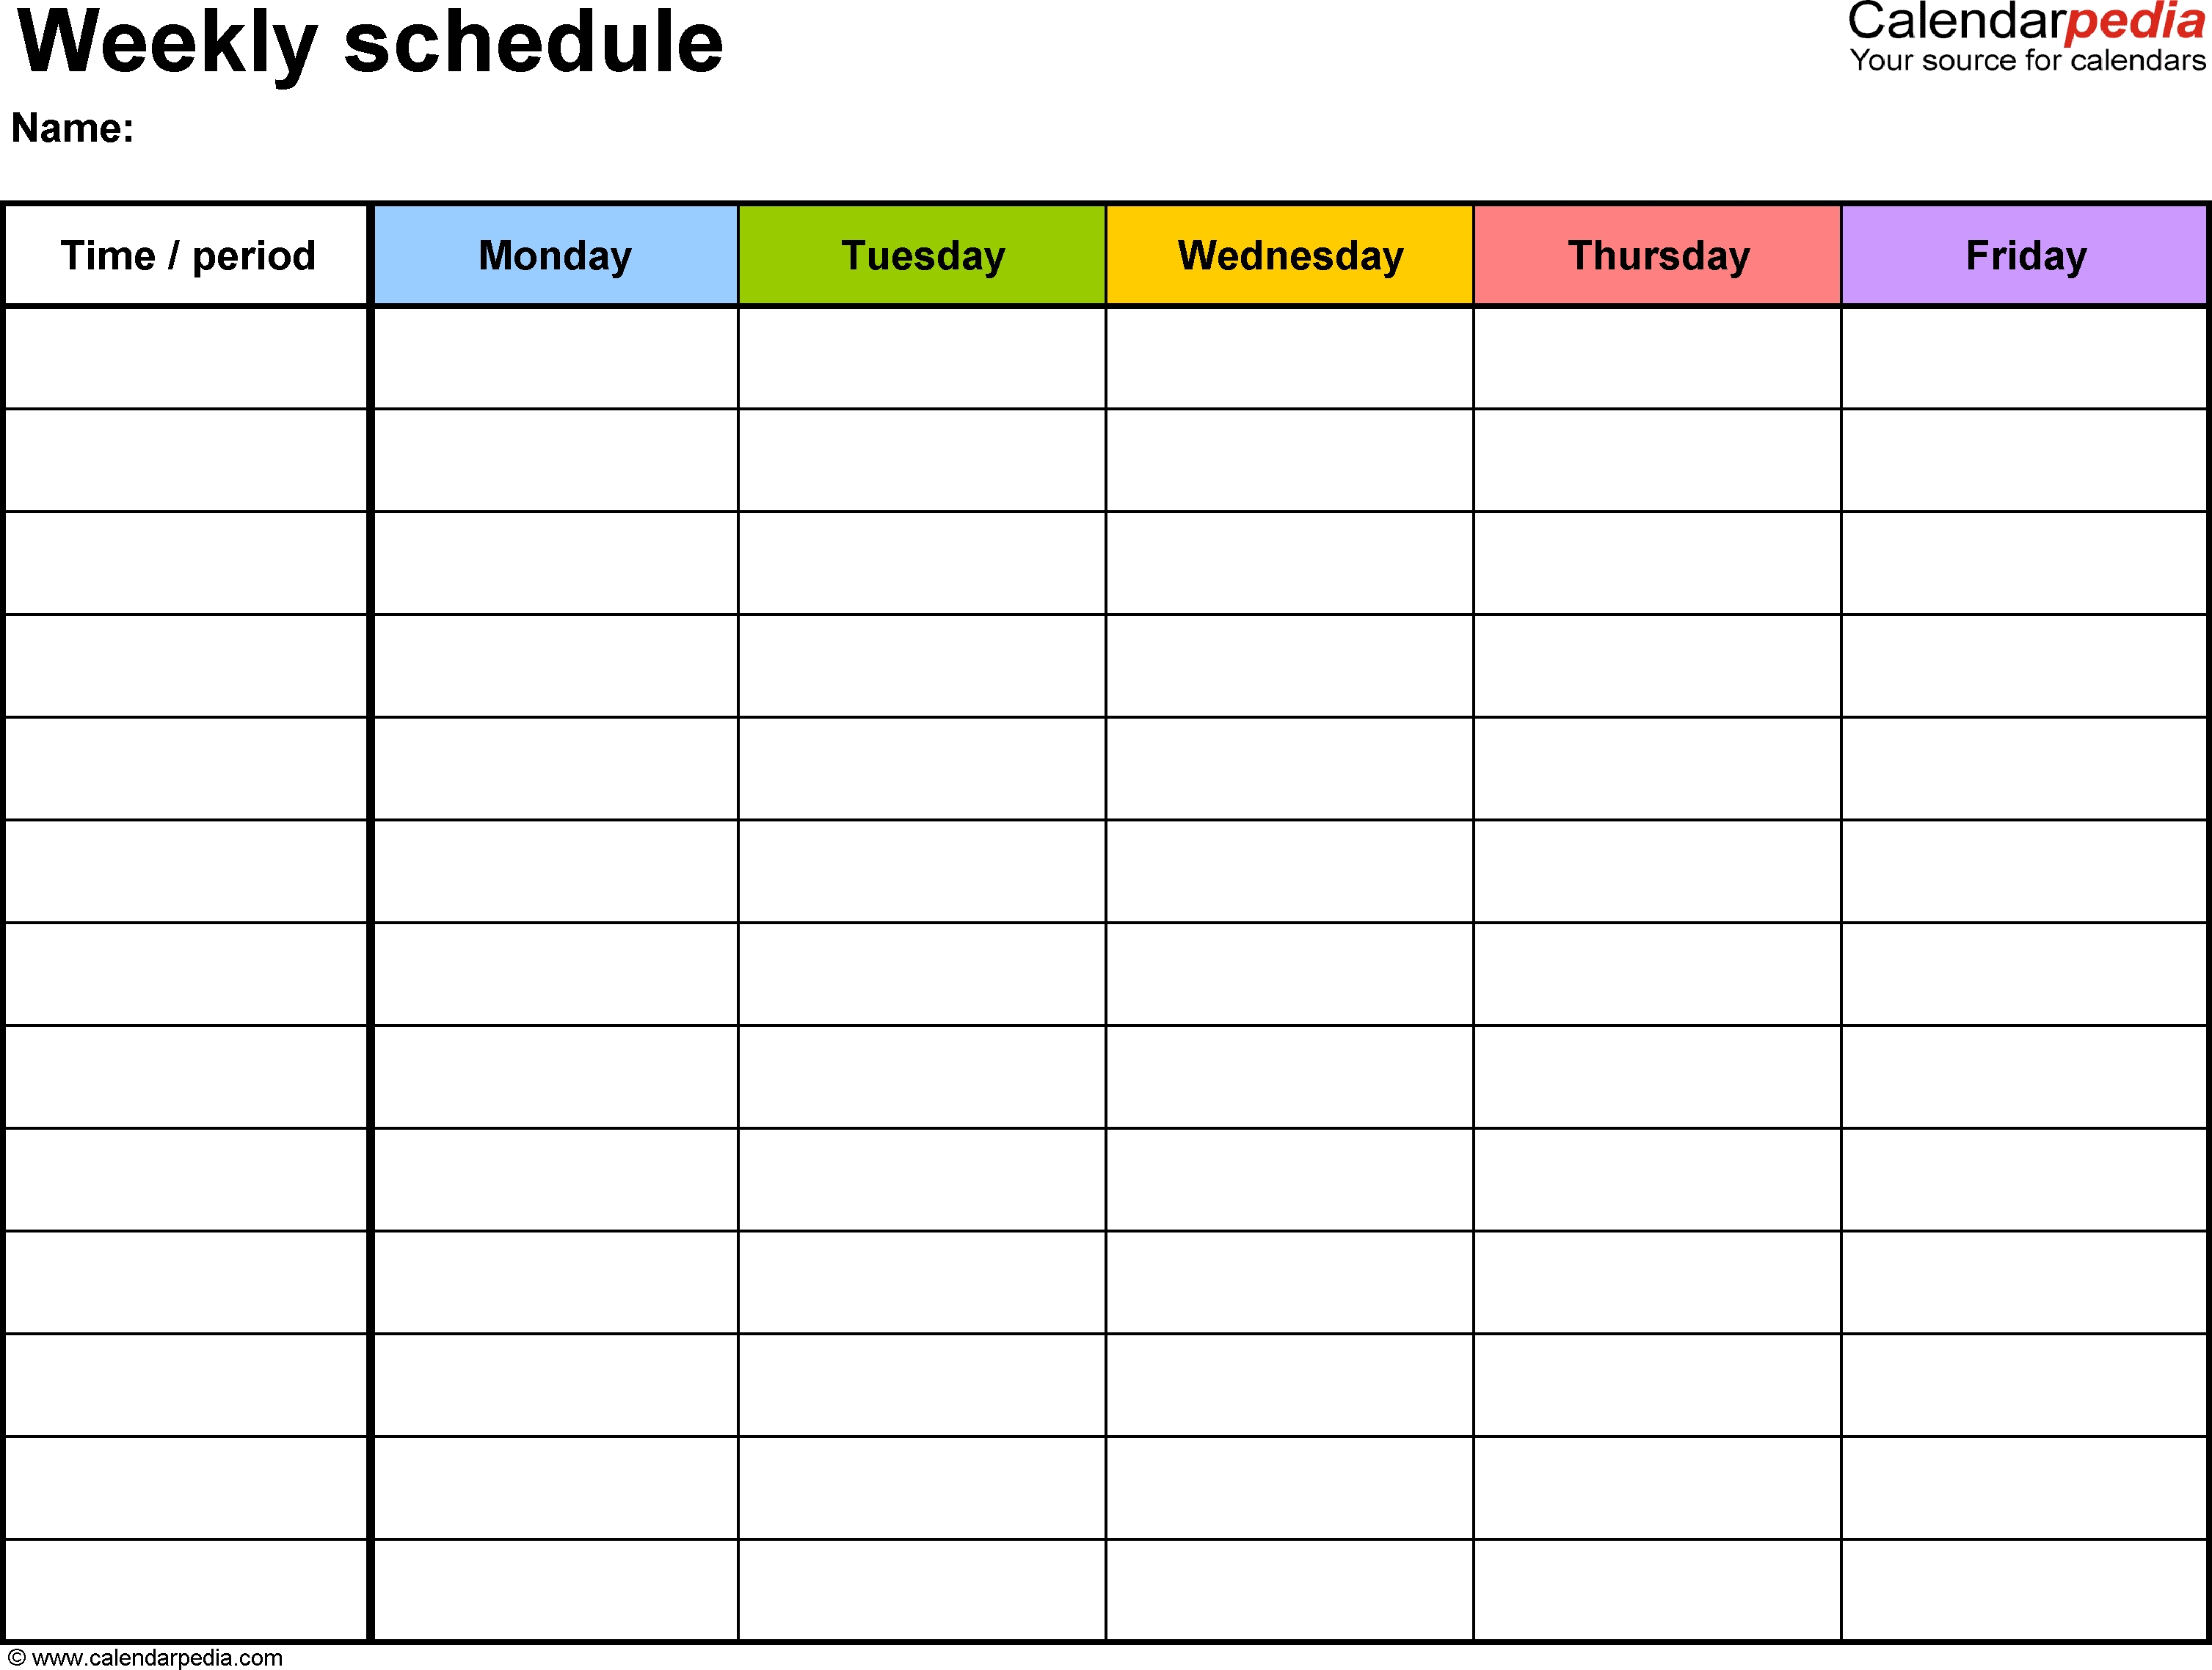 Free Weekly Schedule Templates For Excel - 18 Templates pertaining to Free Day To Day Calendar